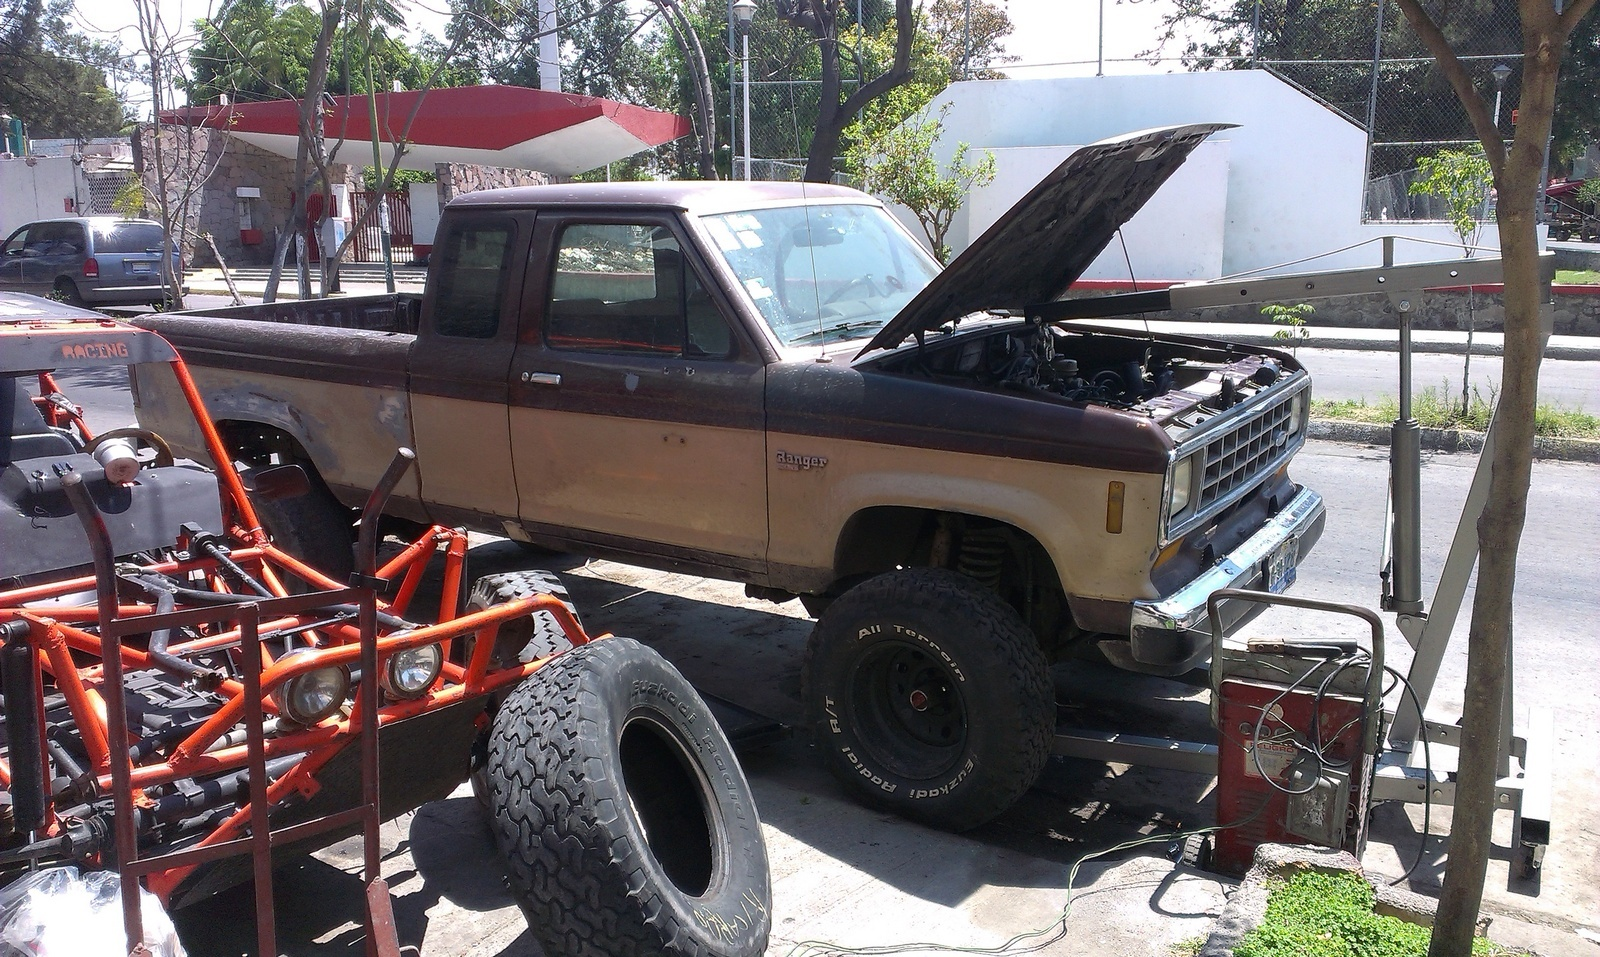 Ford Ranger Questions What All Do You Have To Put A 302 In New Mustang Wiring Harness 1998 Torque Is Very Good And The 4x4 Work Fine Whit This Motor Engine Any My Facebook Kerry Flazzo Or Email Hackelmogmailcom